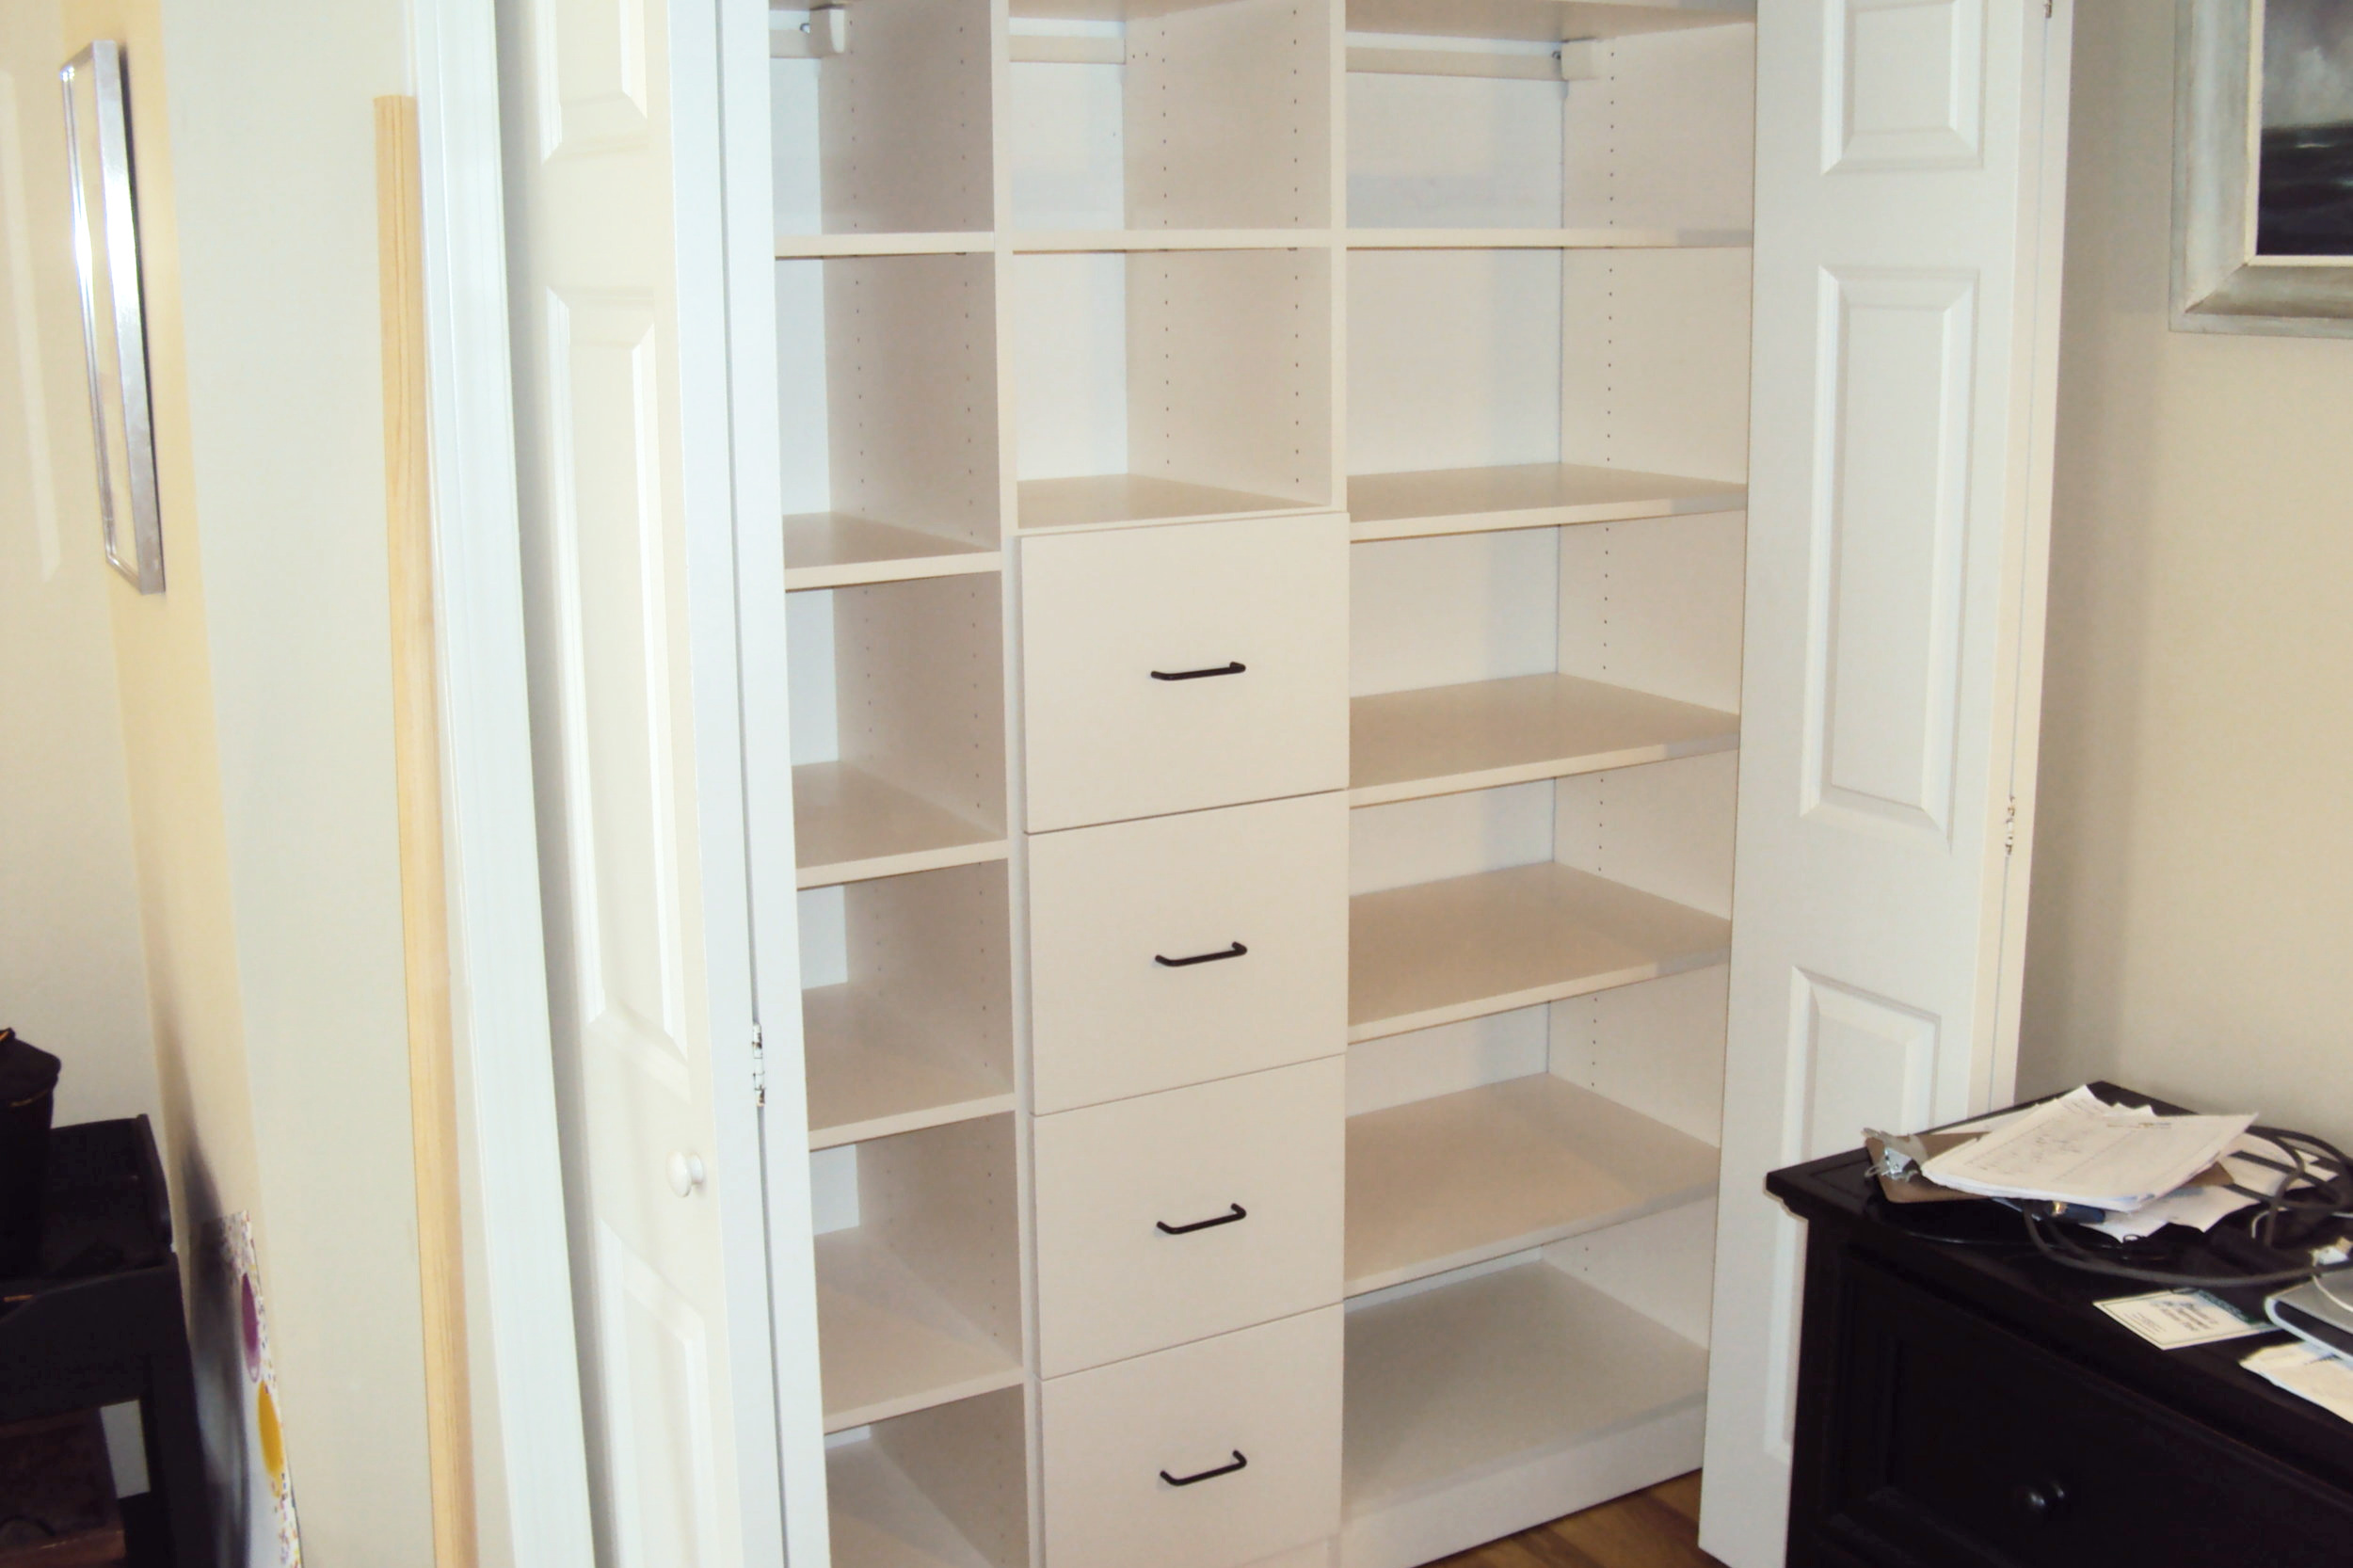 AntiqueWhite_OfficeCloset_FileDrawers.JPG